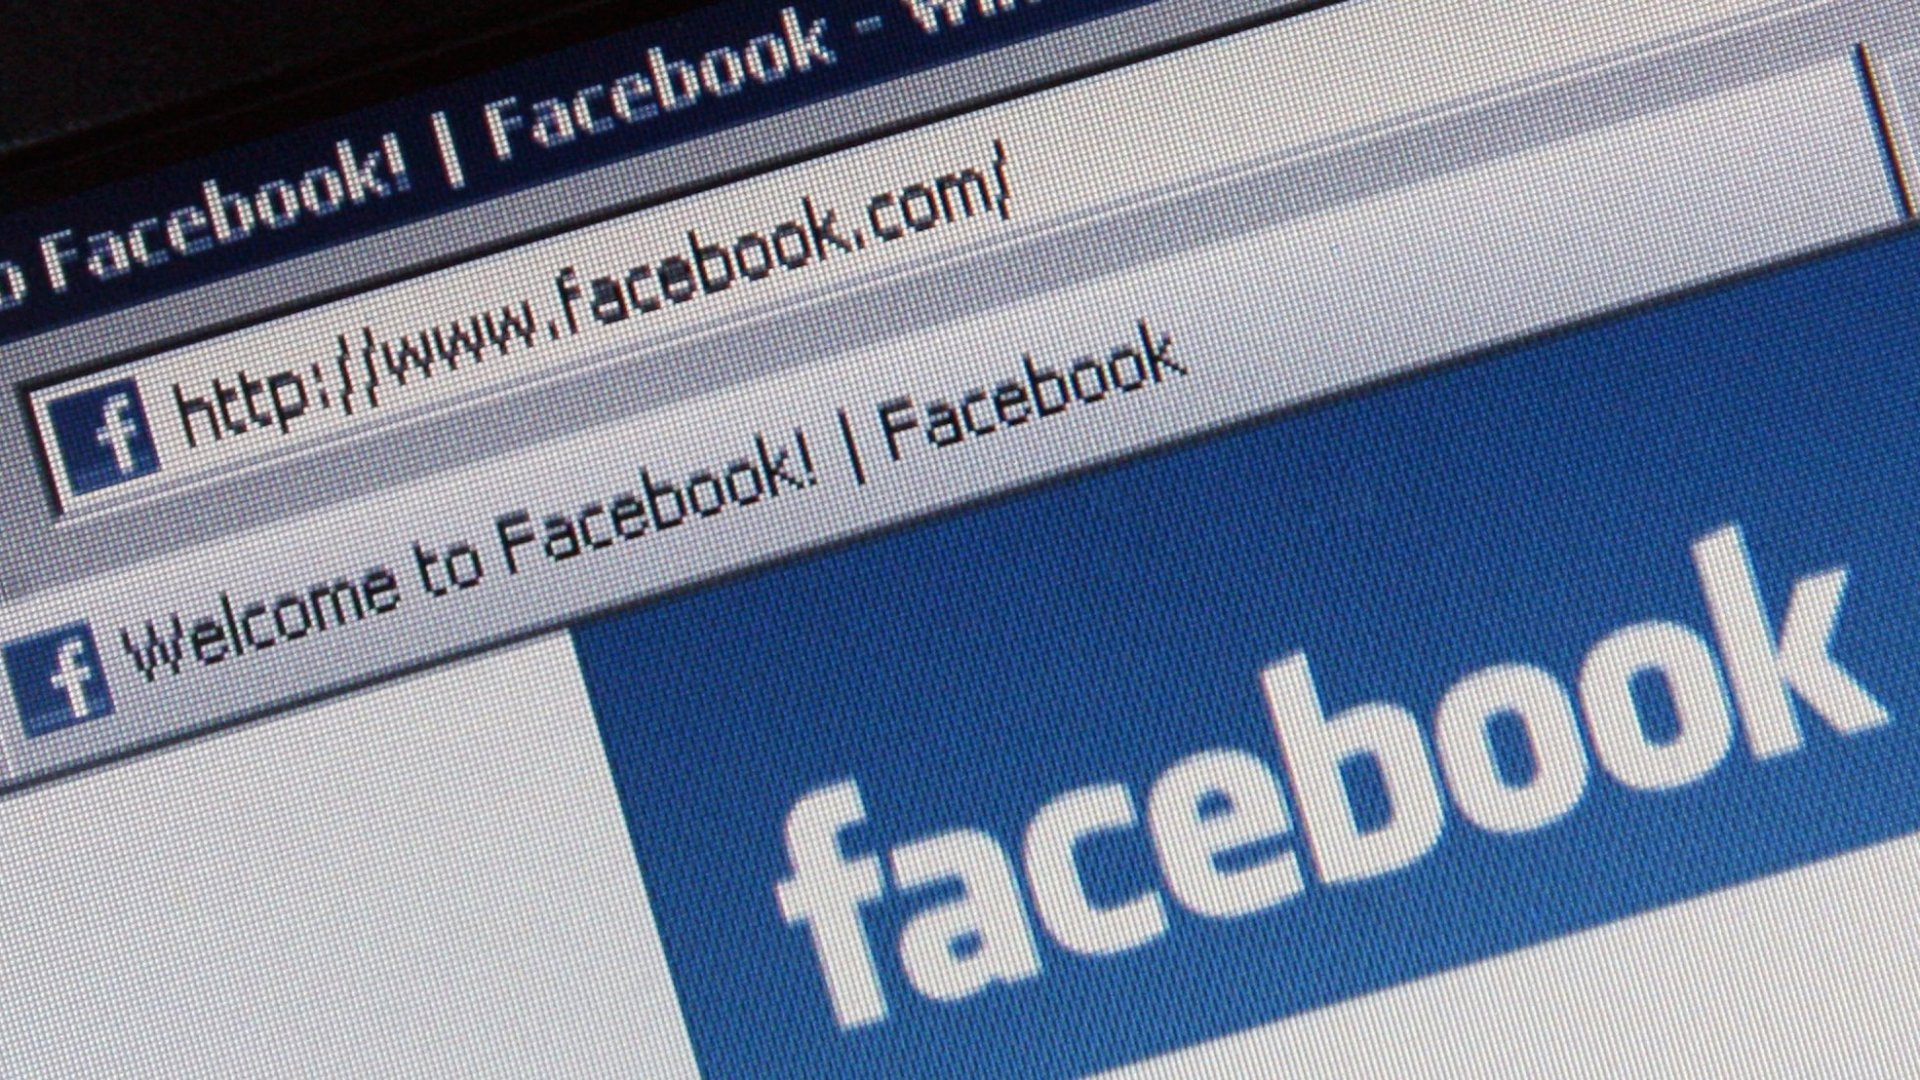 3 Serious Facebook Security Holes You Didn't Know About